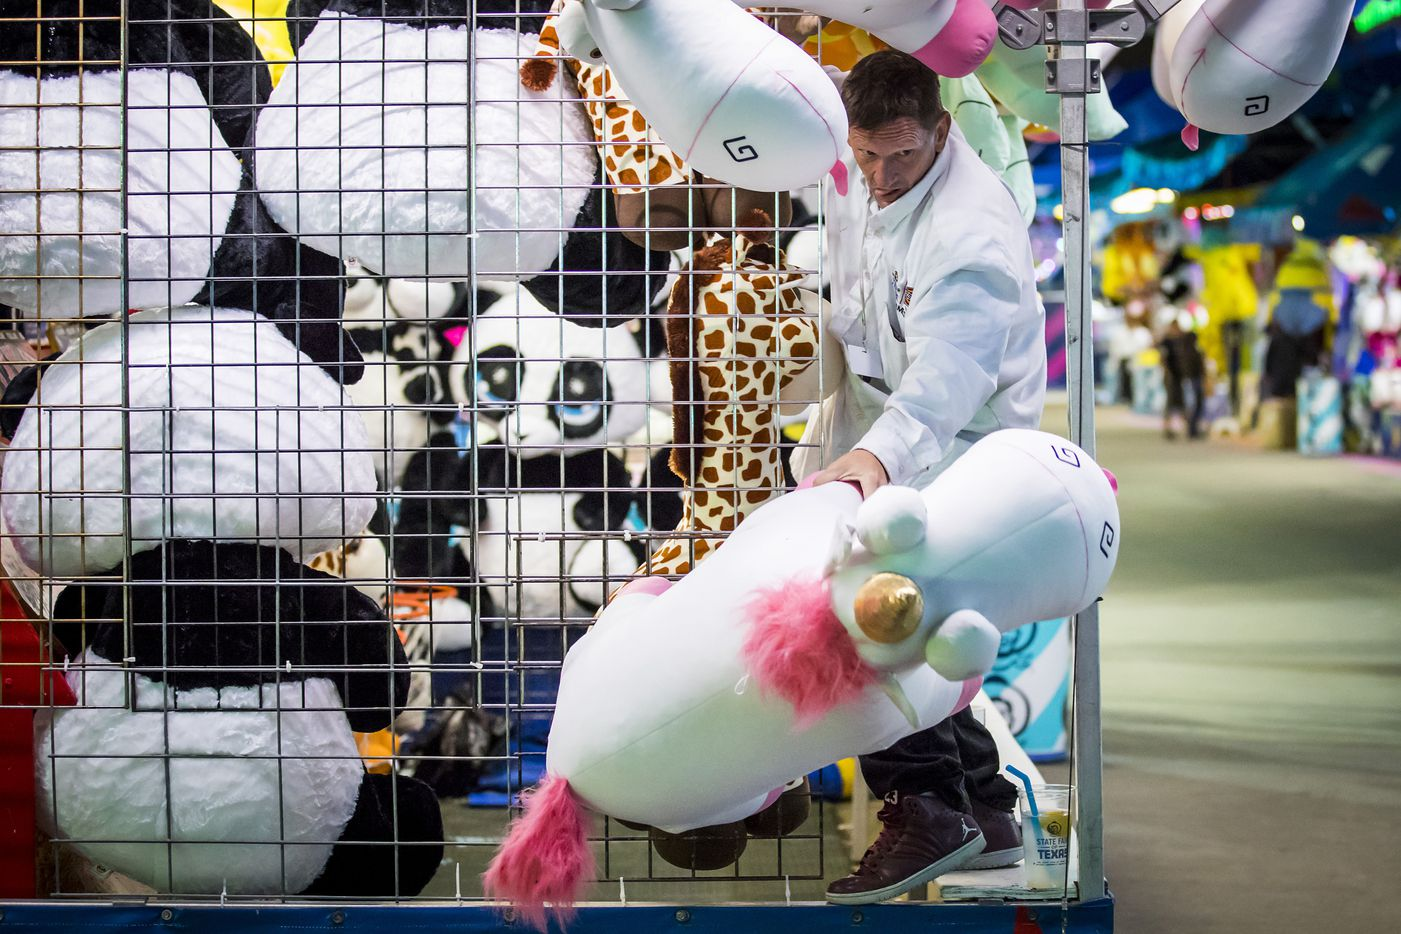 Michael Jenkins, 53, restocks prizes on the Midway after closing time at the State Fair of Texas.